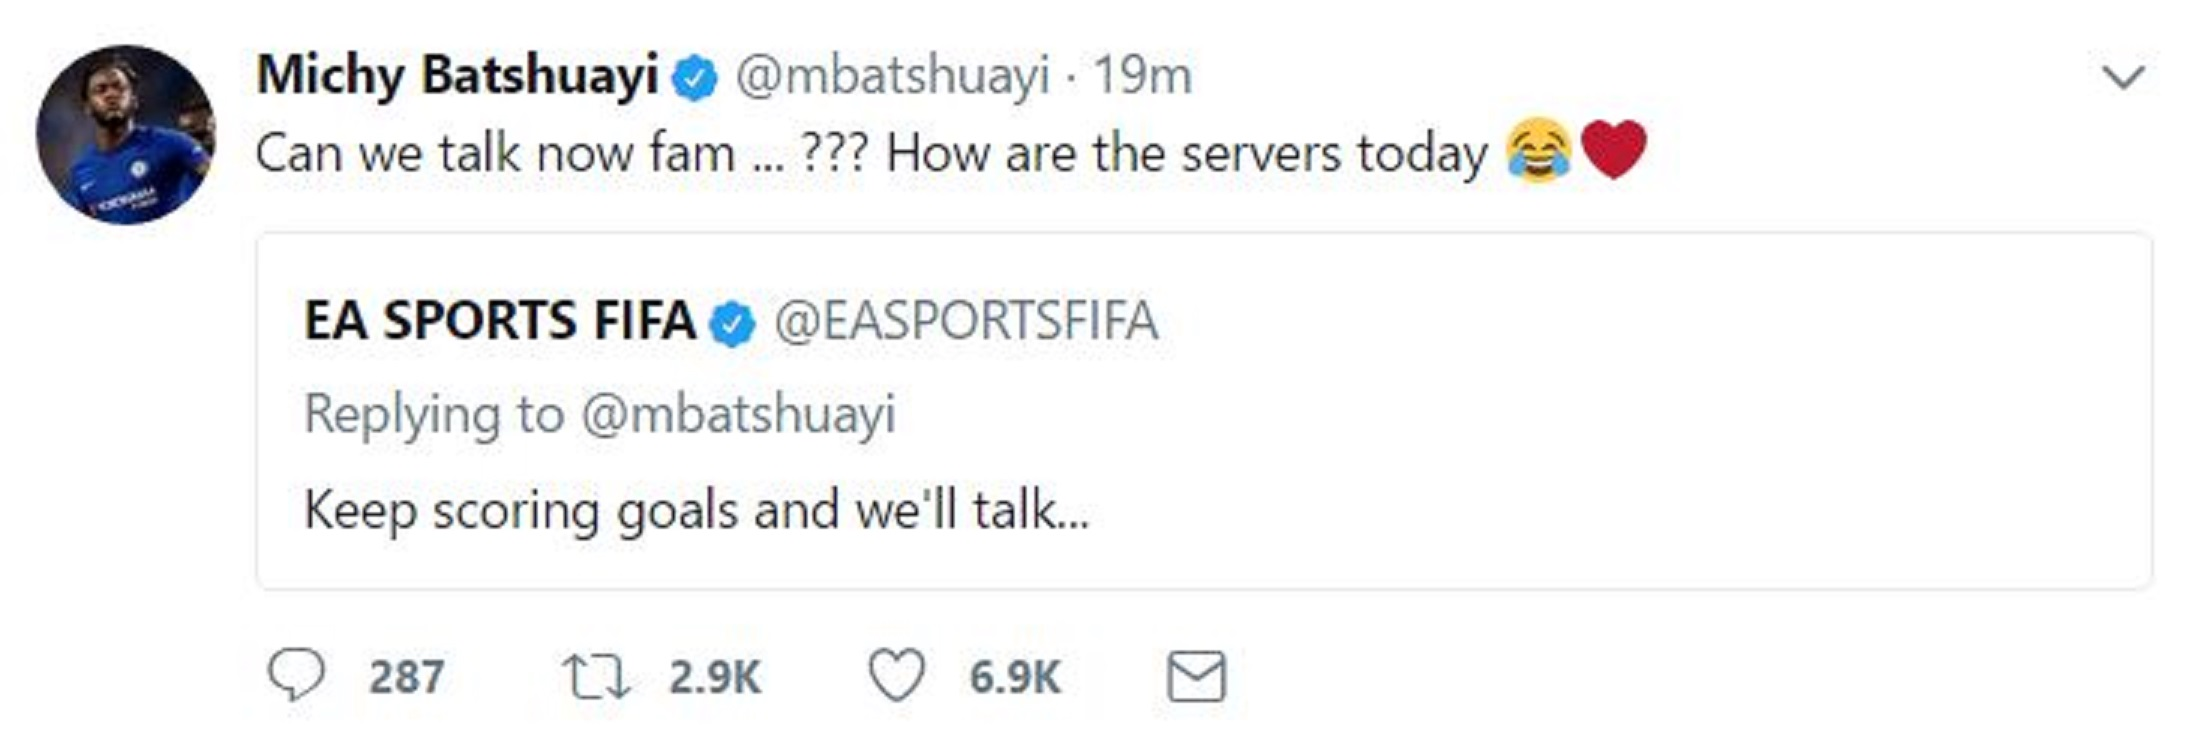 A screenshot of Michy Batshuayi's tweet to EA Sports